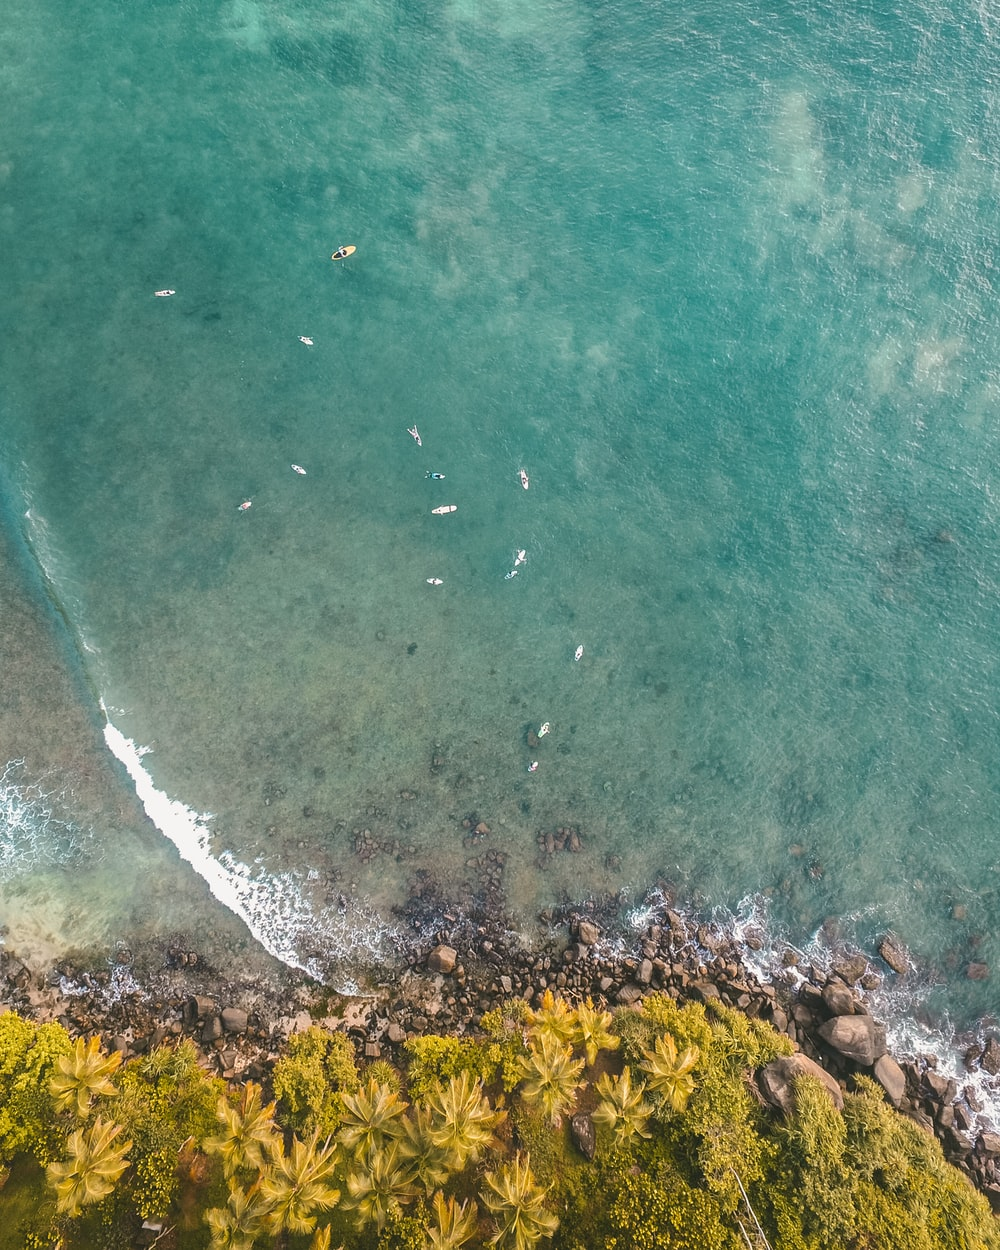 birds-eye view on ocean and forest